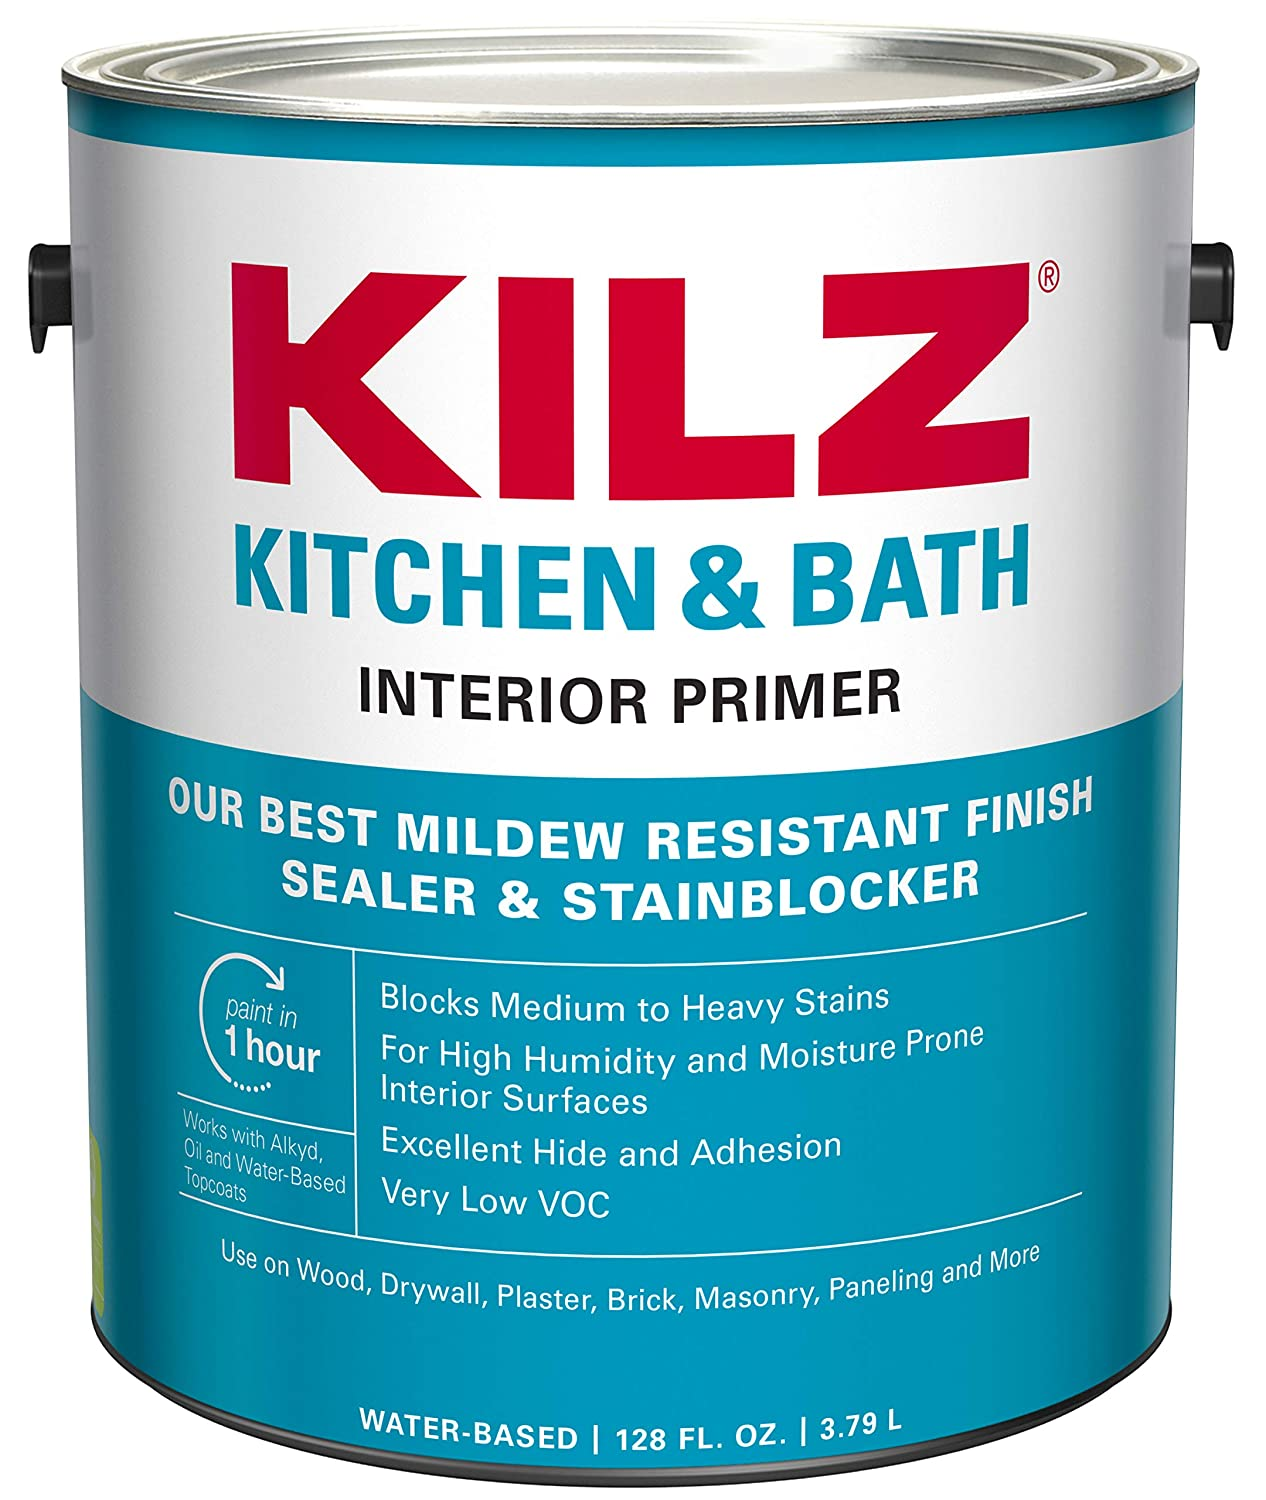 Superb Kilz L204511 Kitchen Bath Interior Latex Primer Sealer Stainblocker With Mildew Resistant Finish White 1 Gallon 1 Gallon 4 L Interior Design Ideas Inesswwsoteloinfo